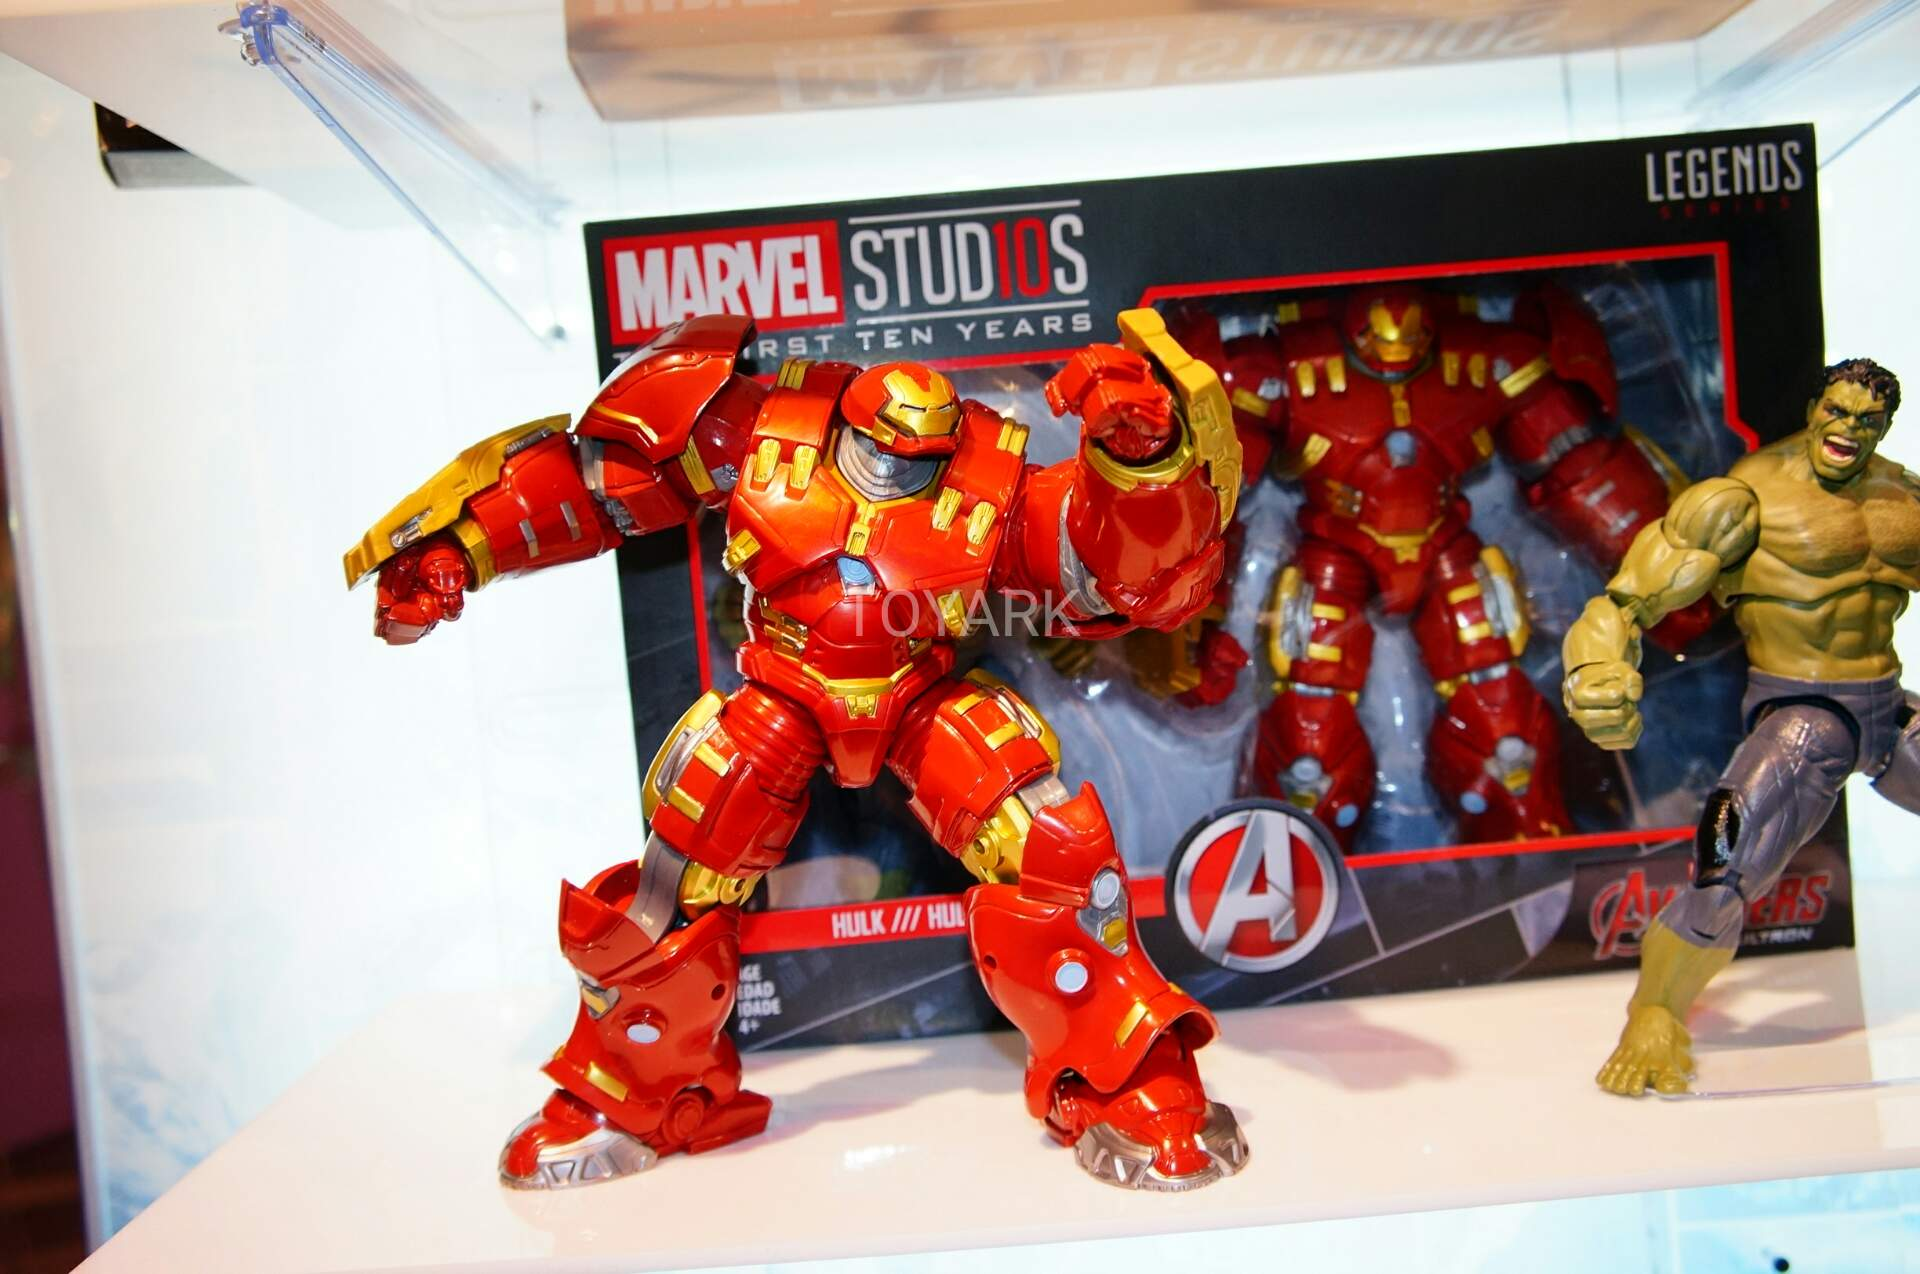 Toy Fair 2018 - Hasbro - Marvel Legends - Marvel Studios - Hulkbuster - Hulk